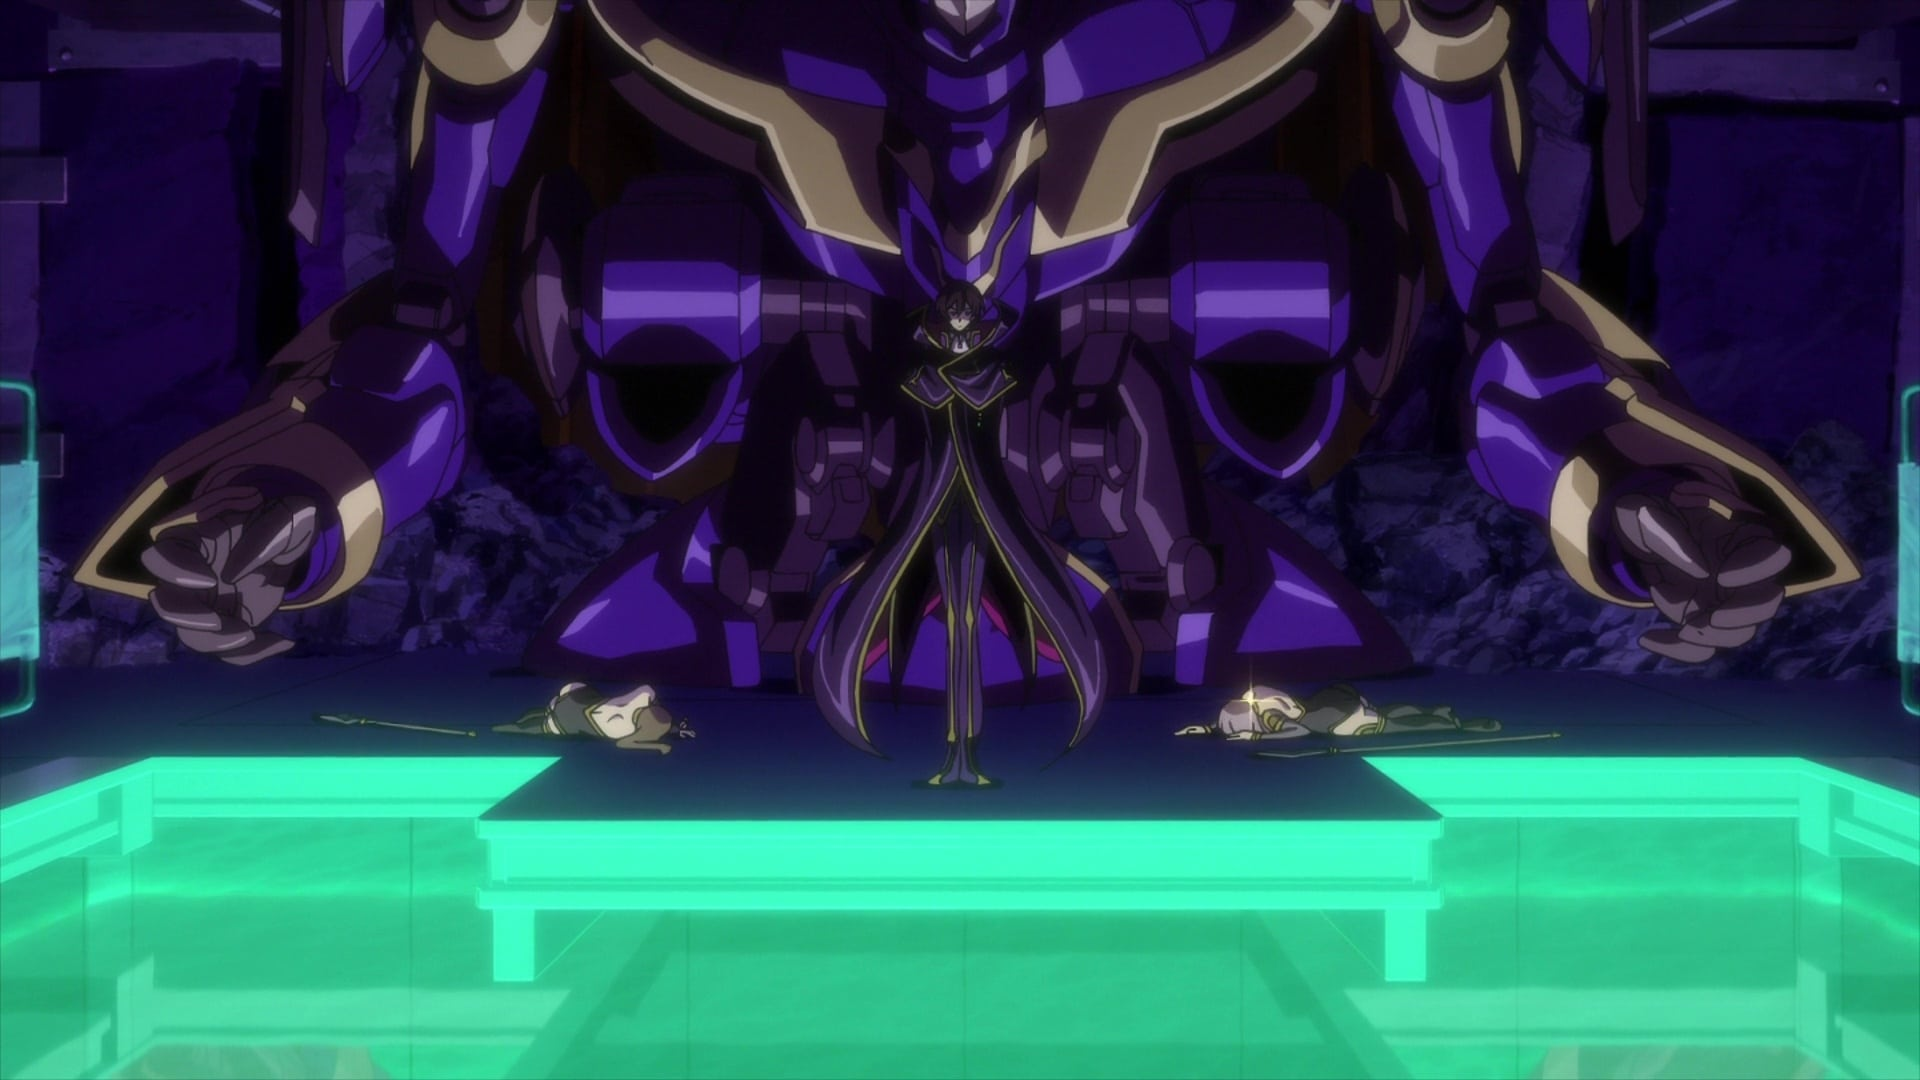 Code Geass: Lelouch of the Re;Surrection [2019]